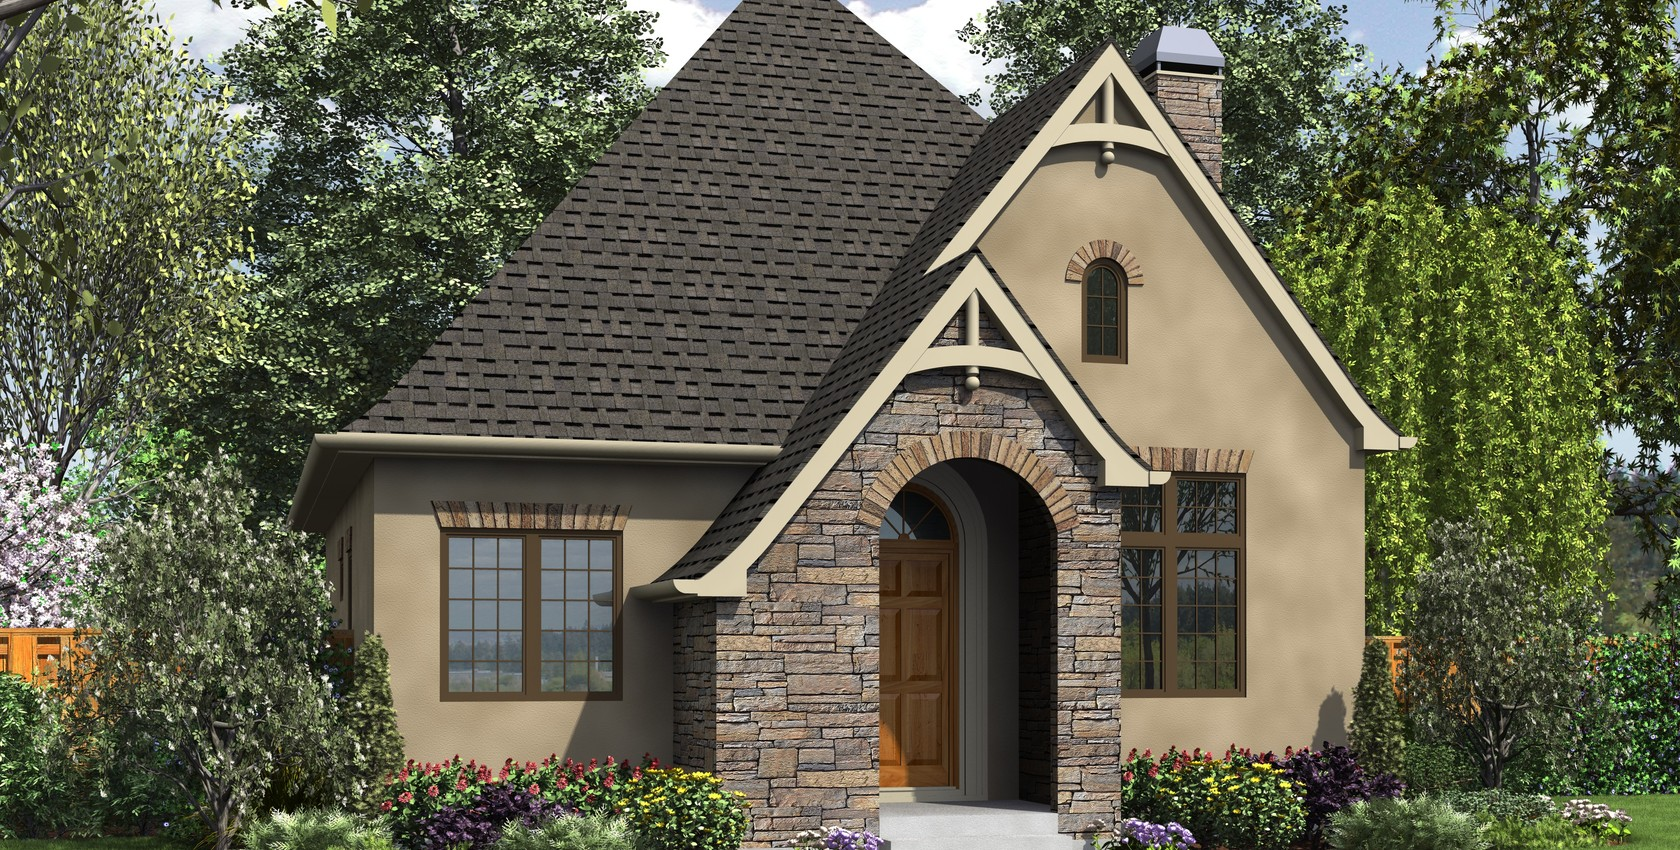 Image for Cecil-Guest Cottage, Vacation Home or Compact Living - This Plan is Perfect in Any Case-8474